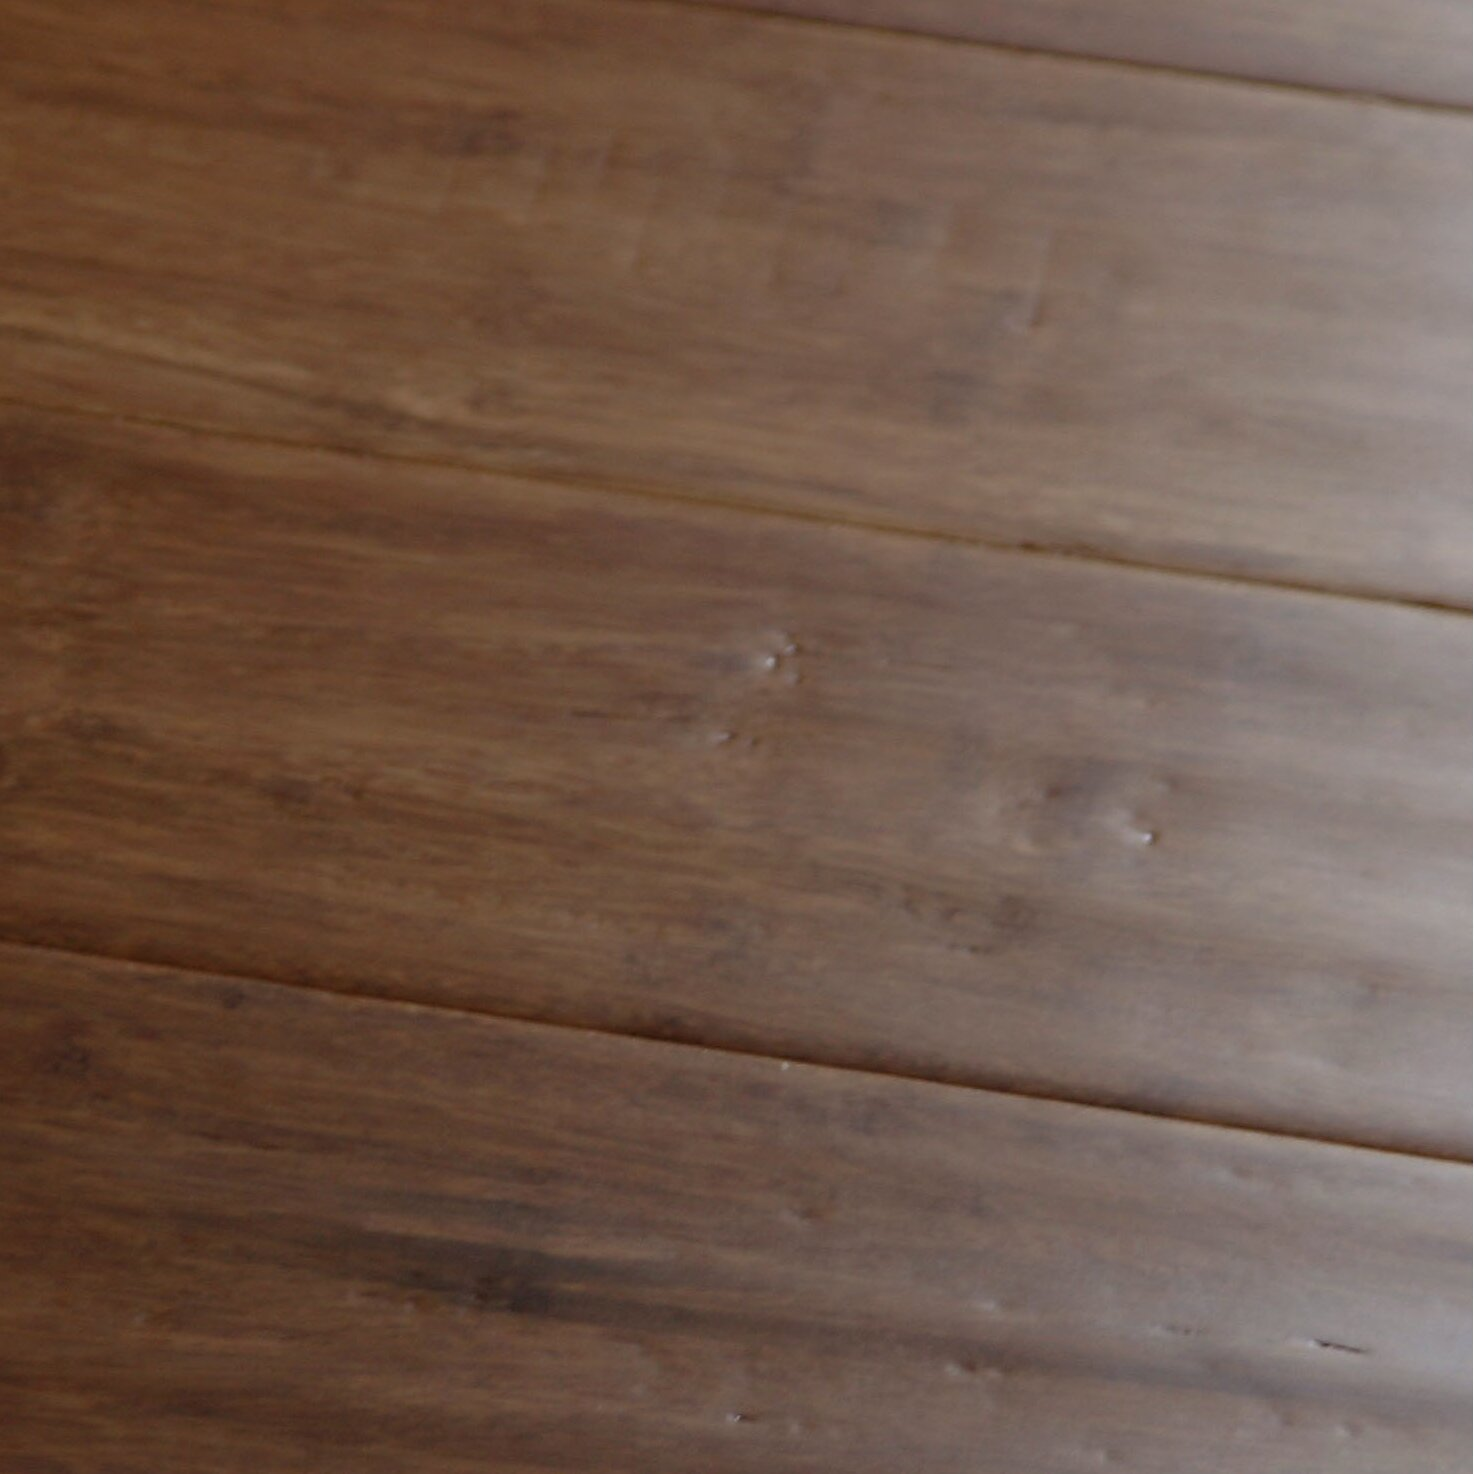 Islander Flooring 4 Engineered Bamboo Hardwood Flooring In Carbonized